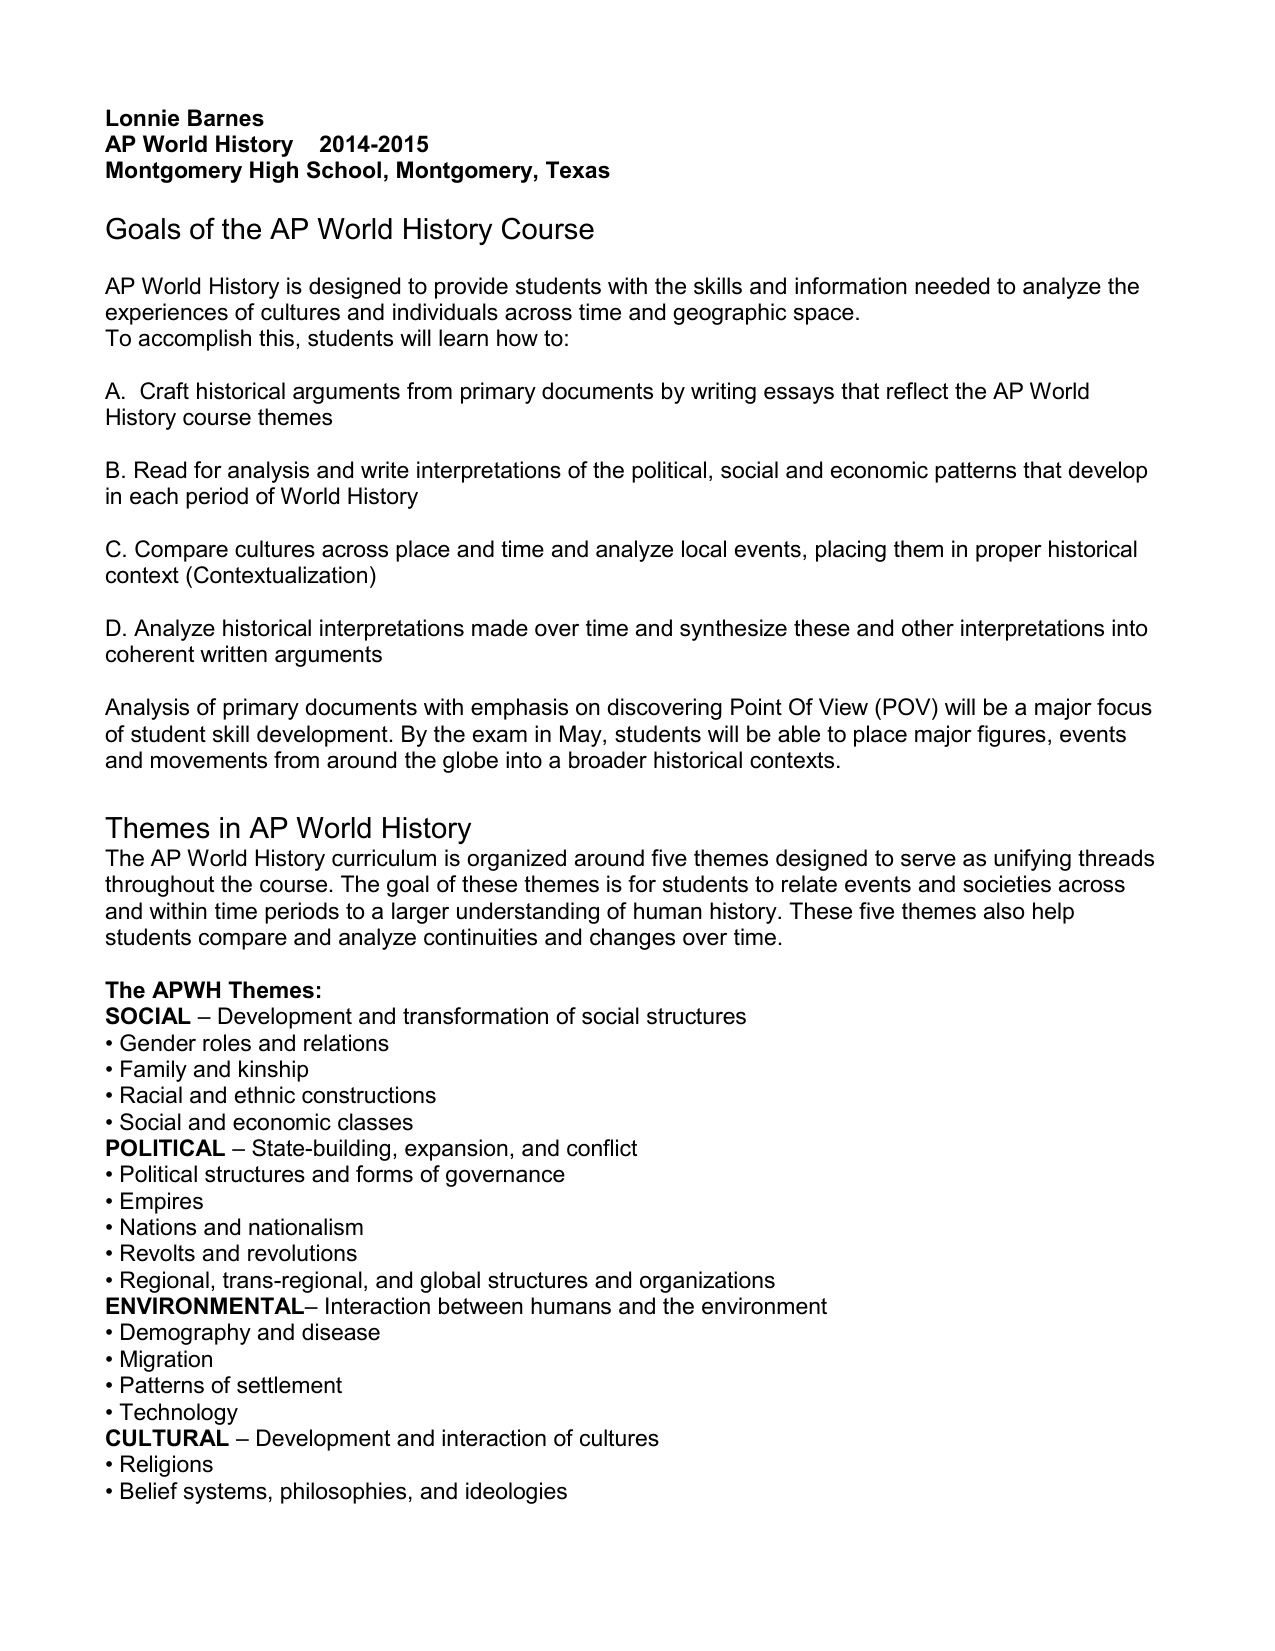 500 word essay on the history of neca Mark brilliant department of history program in american studies university of california, berkeley elements of an effective history exam essay.